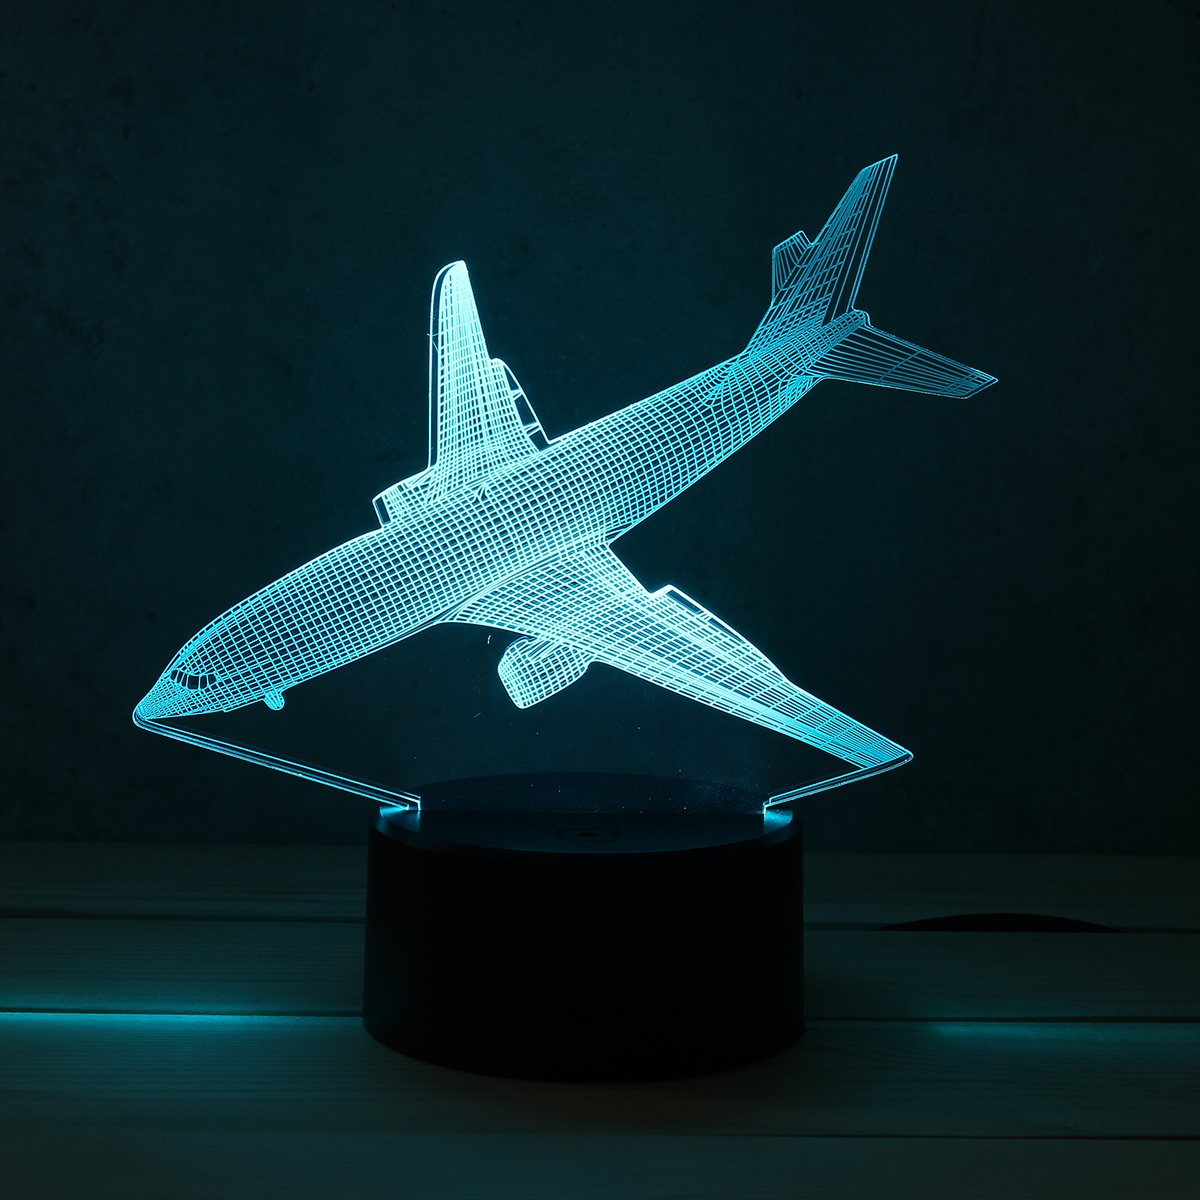 7 Color Airplane Acrylic LED 3D LED Night Light Toys Lamp Air Plane Night Touch Table Desk Light DC5V For Kid Christmas image